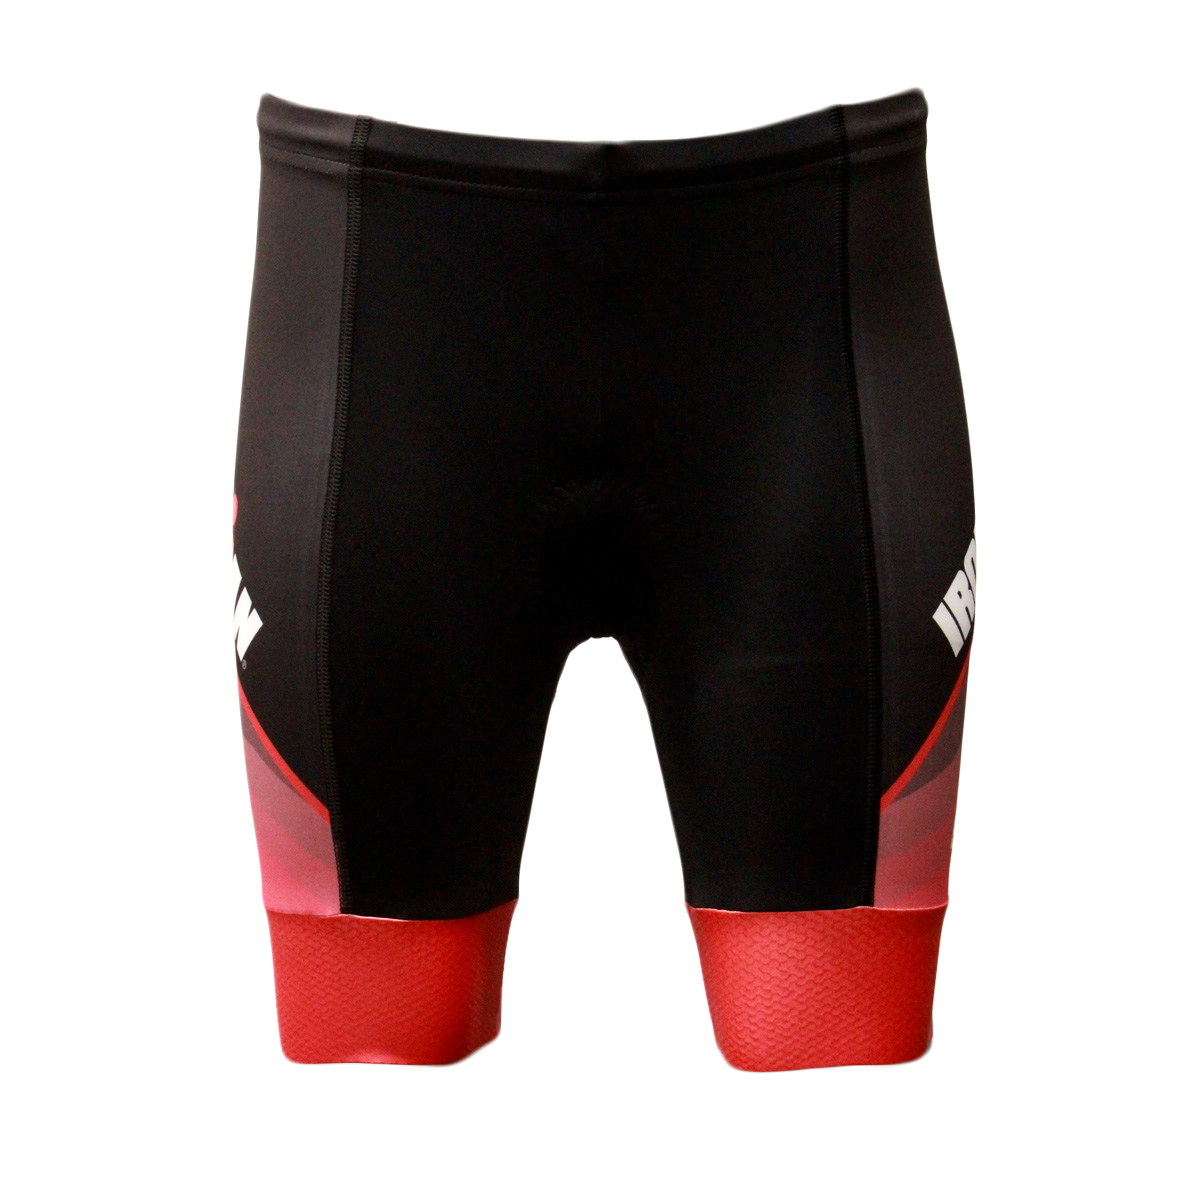 IRONMAN SANTINI MEN'S TRI SHORT